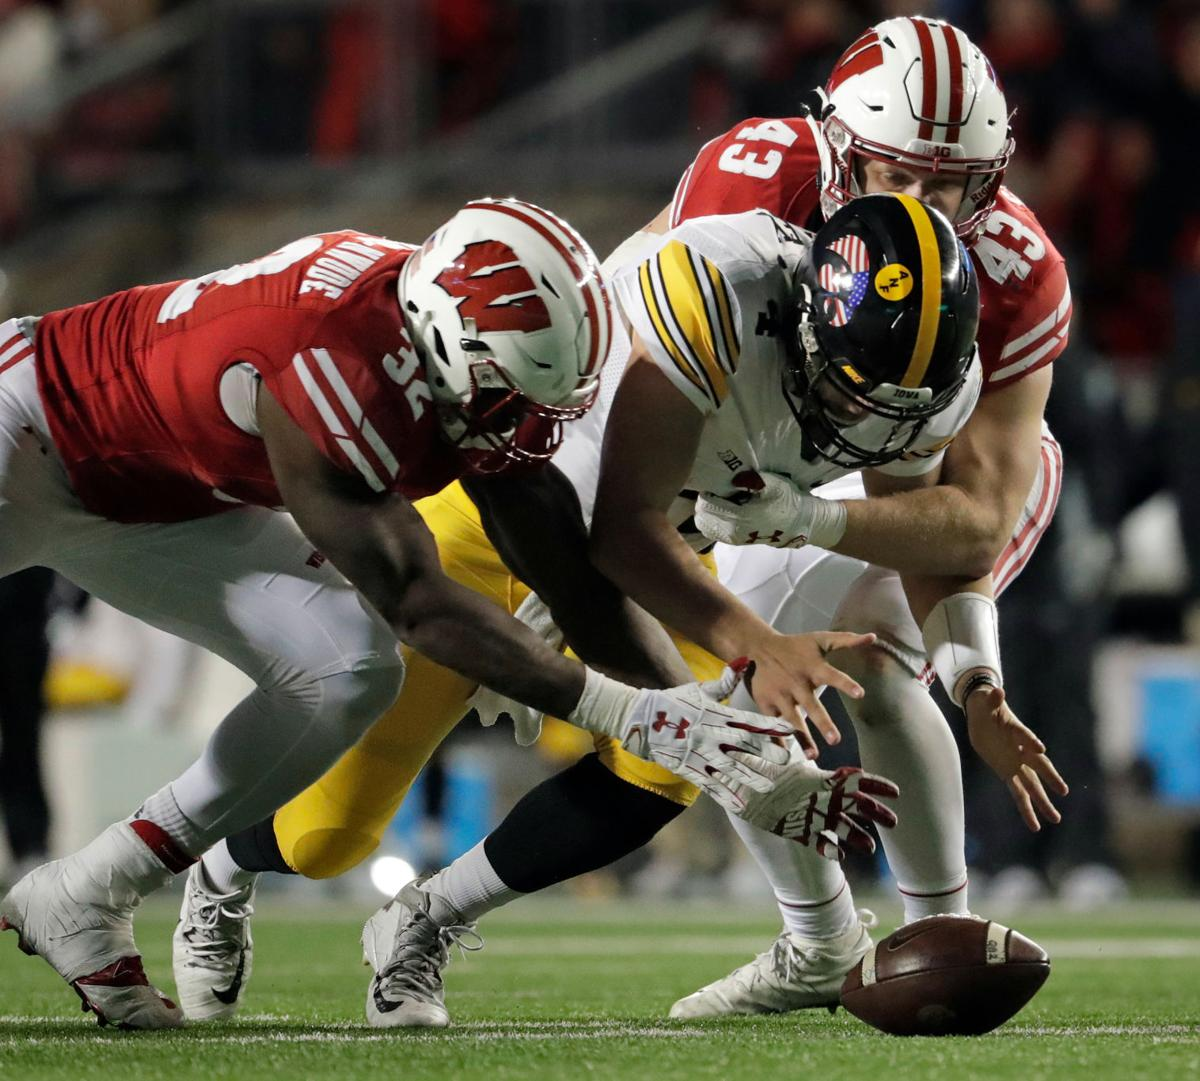 Leon Jacobs fumble recovery against Iowa, State Journal photo